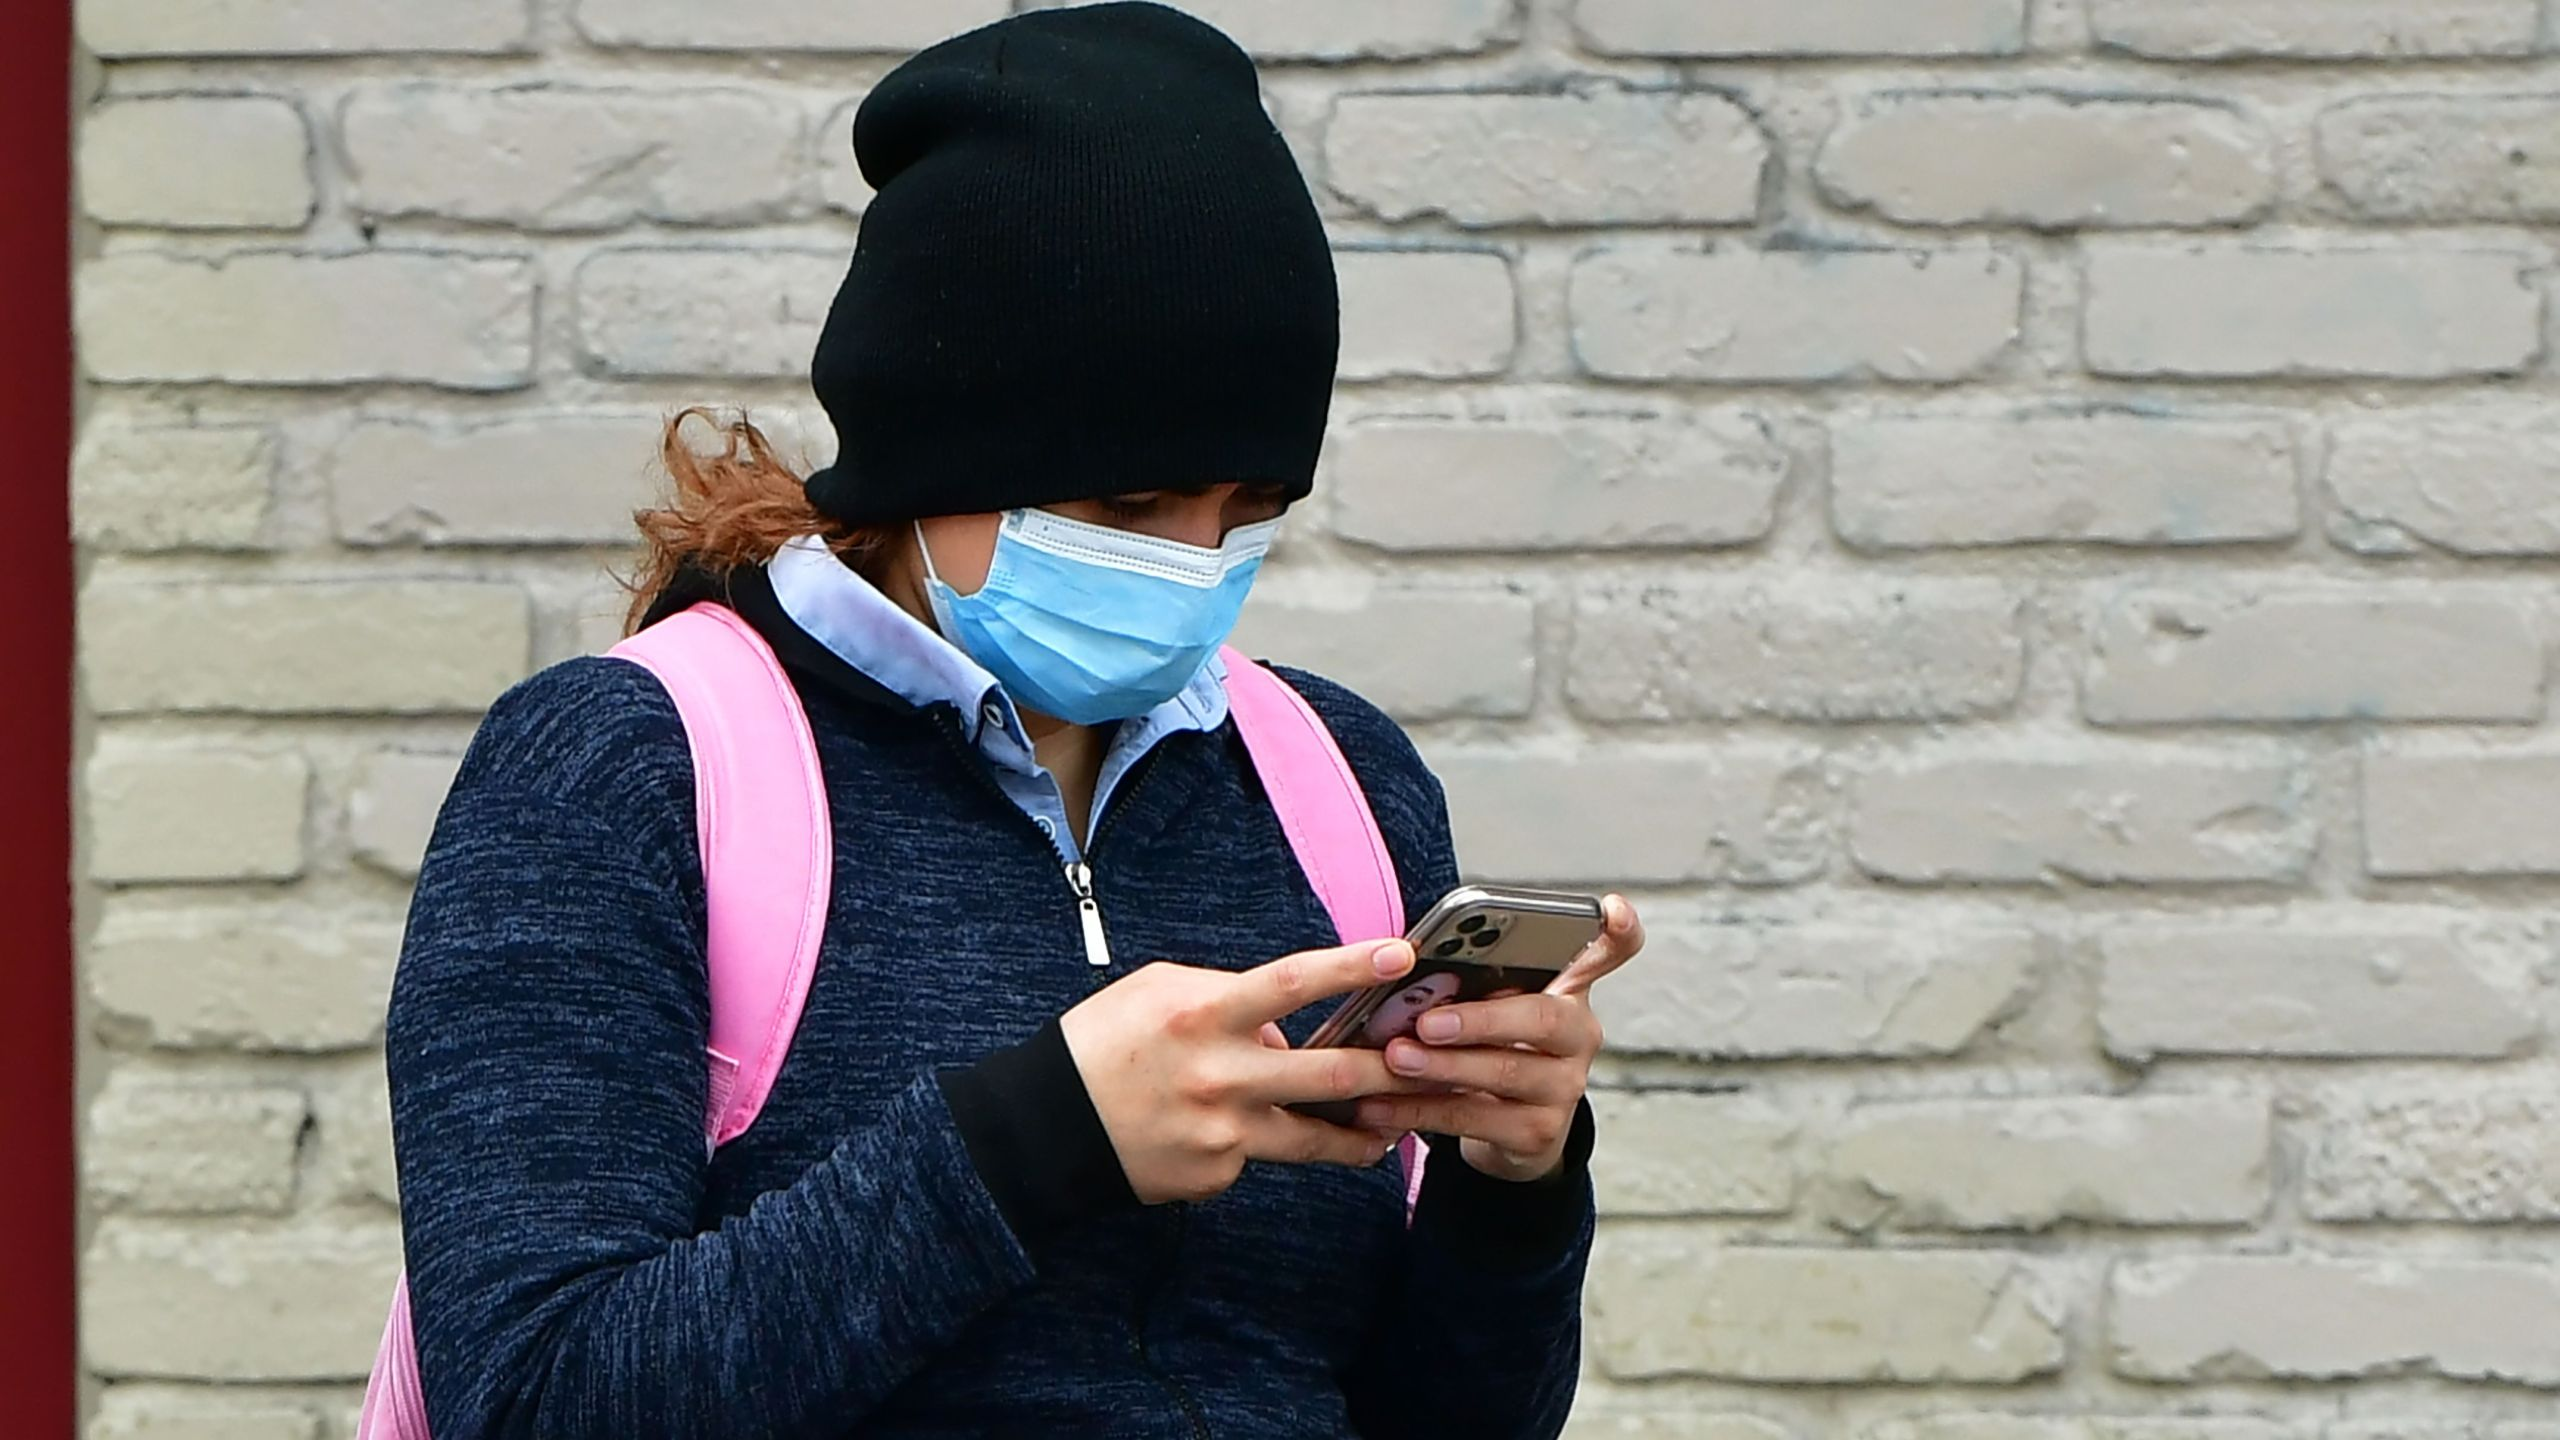 A woman wears a face mask while checking her cellphone in Los Angeles on April 6, 2020. (Credit: Frederic J. Brown / AFP / Getty Images)